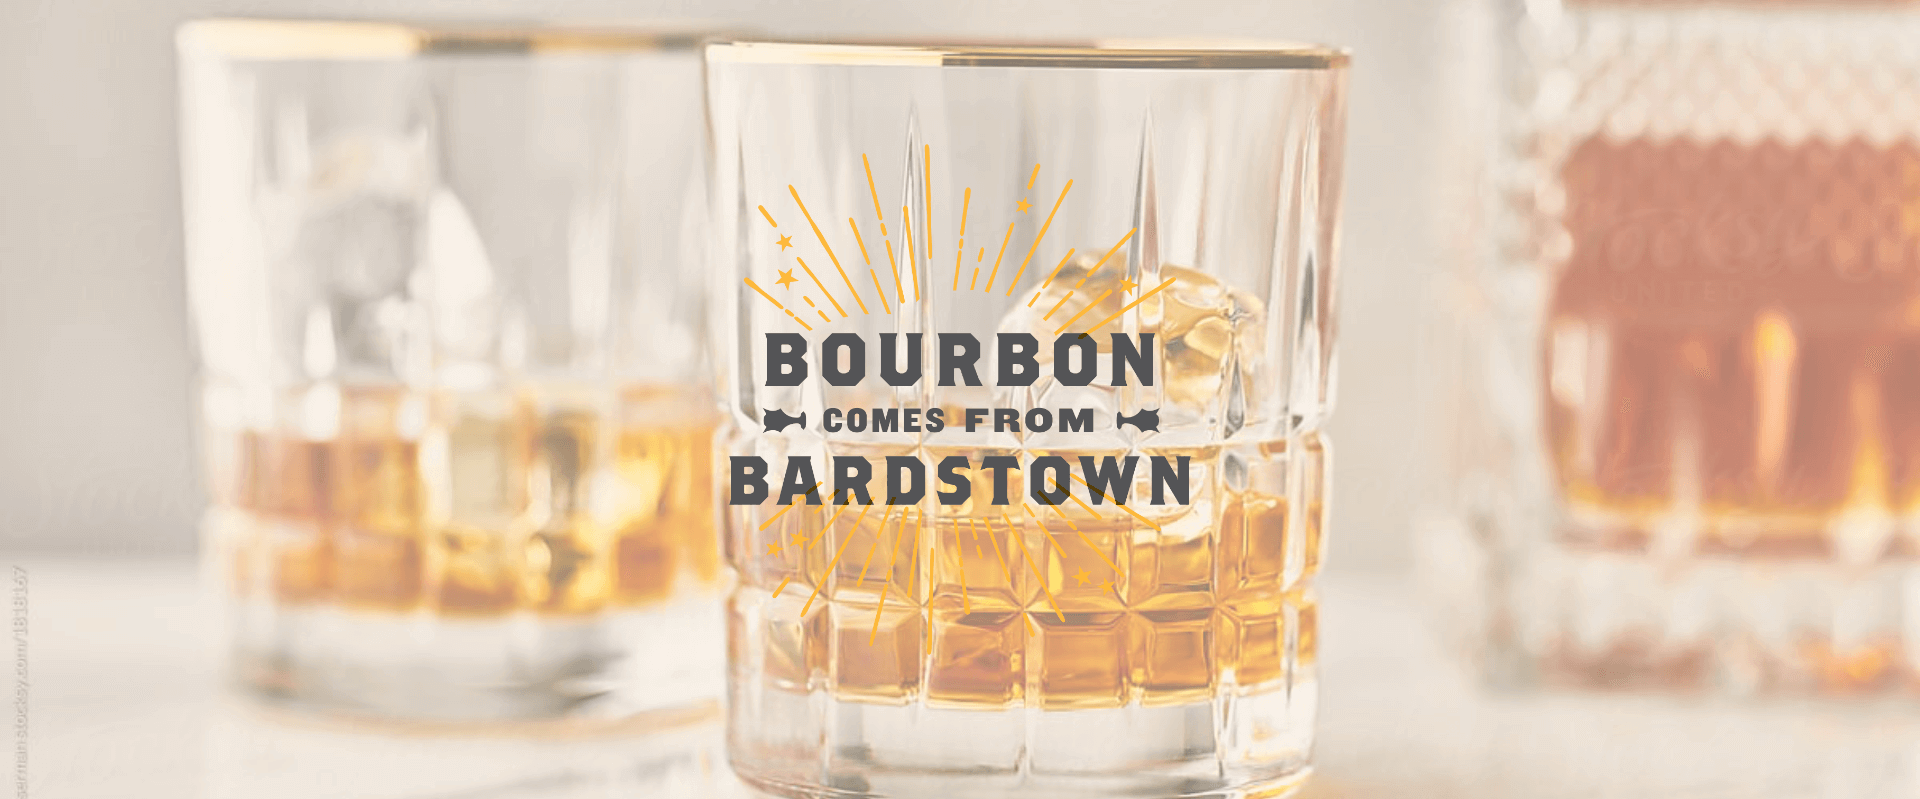 Bourbon Comes From Bardstown Campaign Logo overlaid on glasses of bourbon on the rocks.